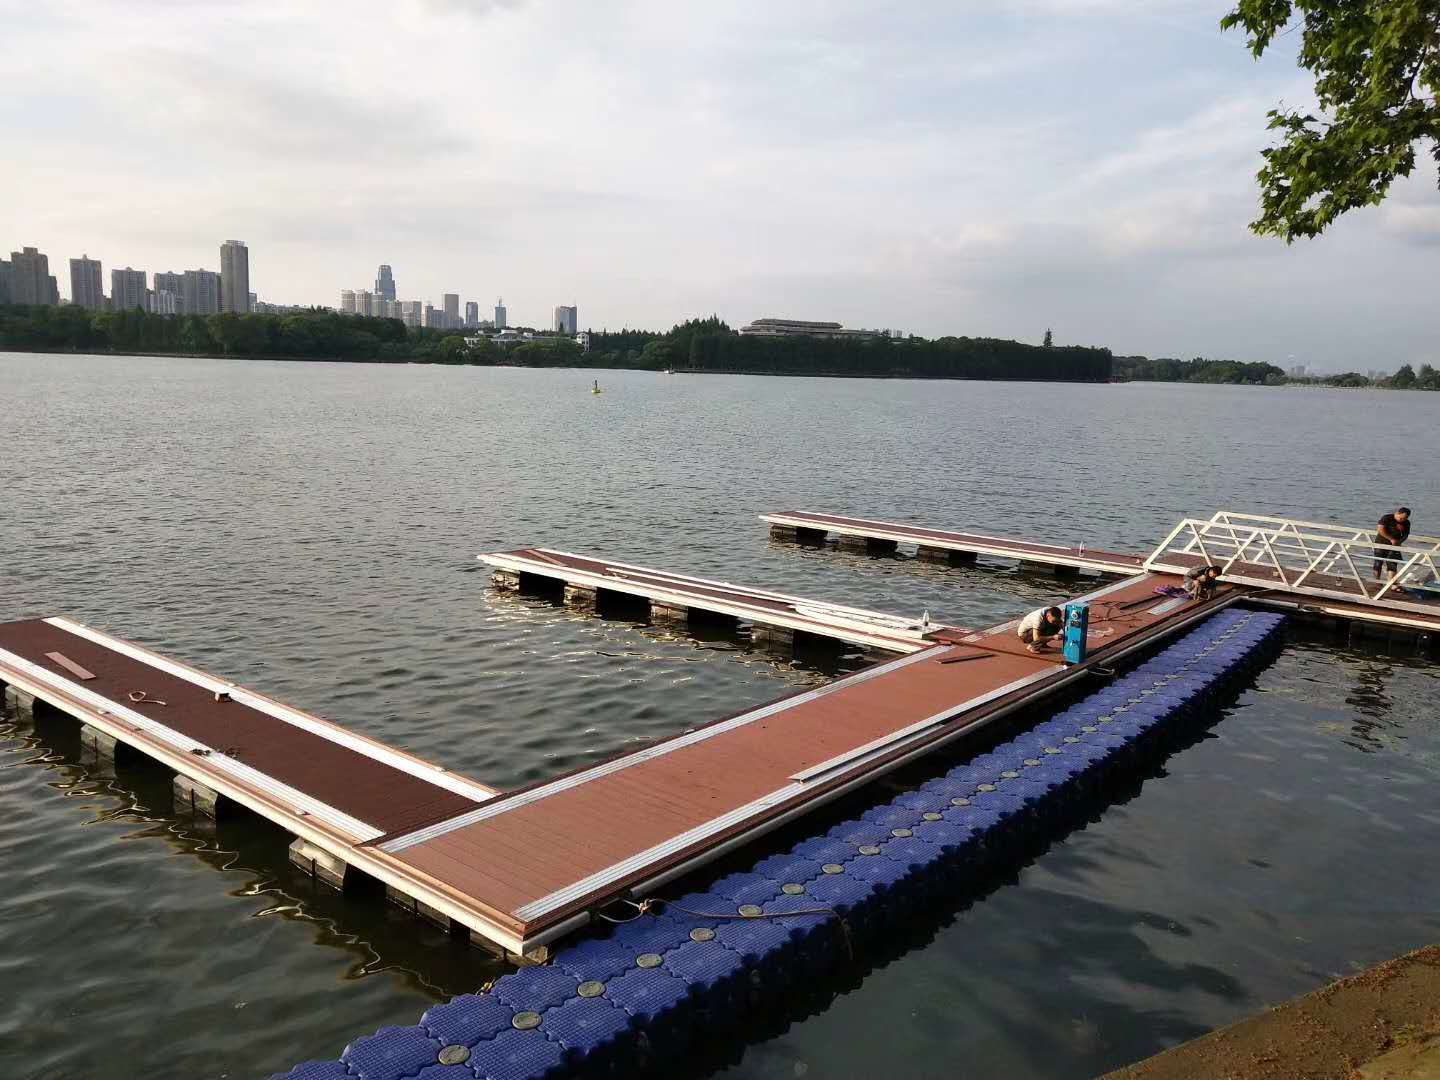 Hengqiao Dragon Boat Race Dock